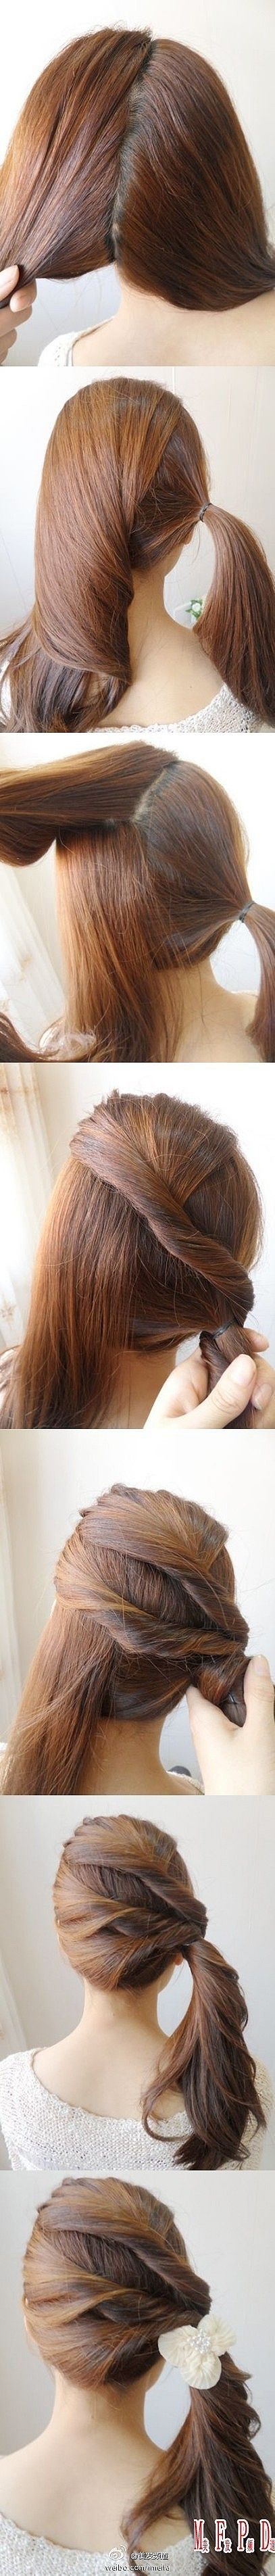 Hair twist - 17 ponytail variations at the link